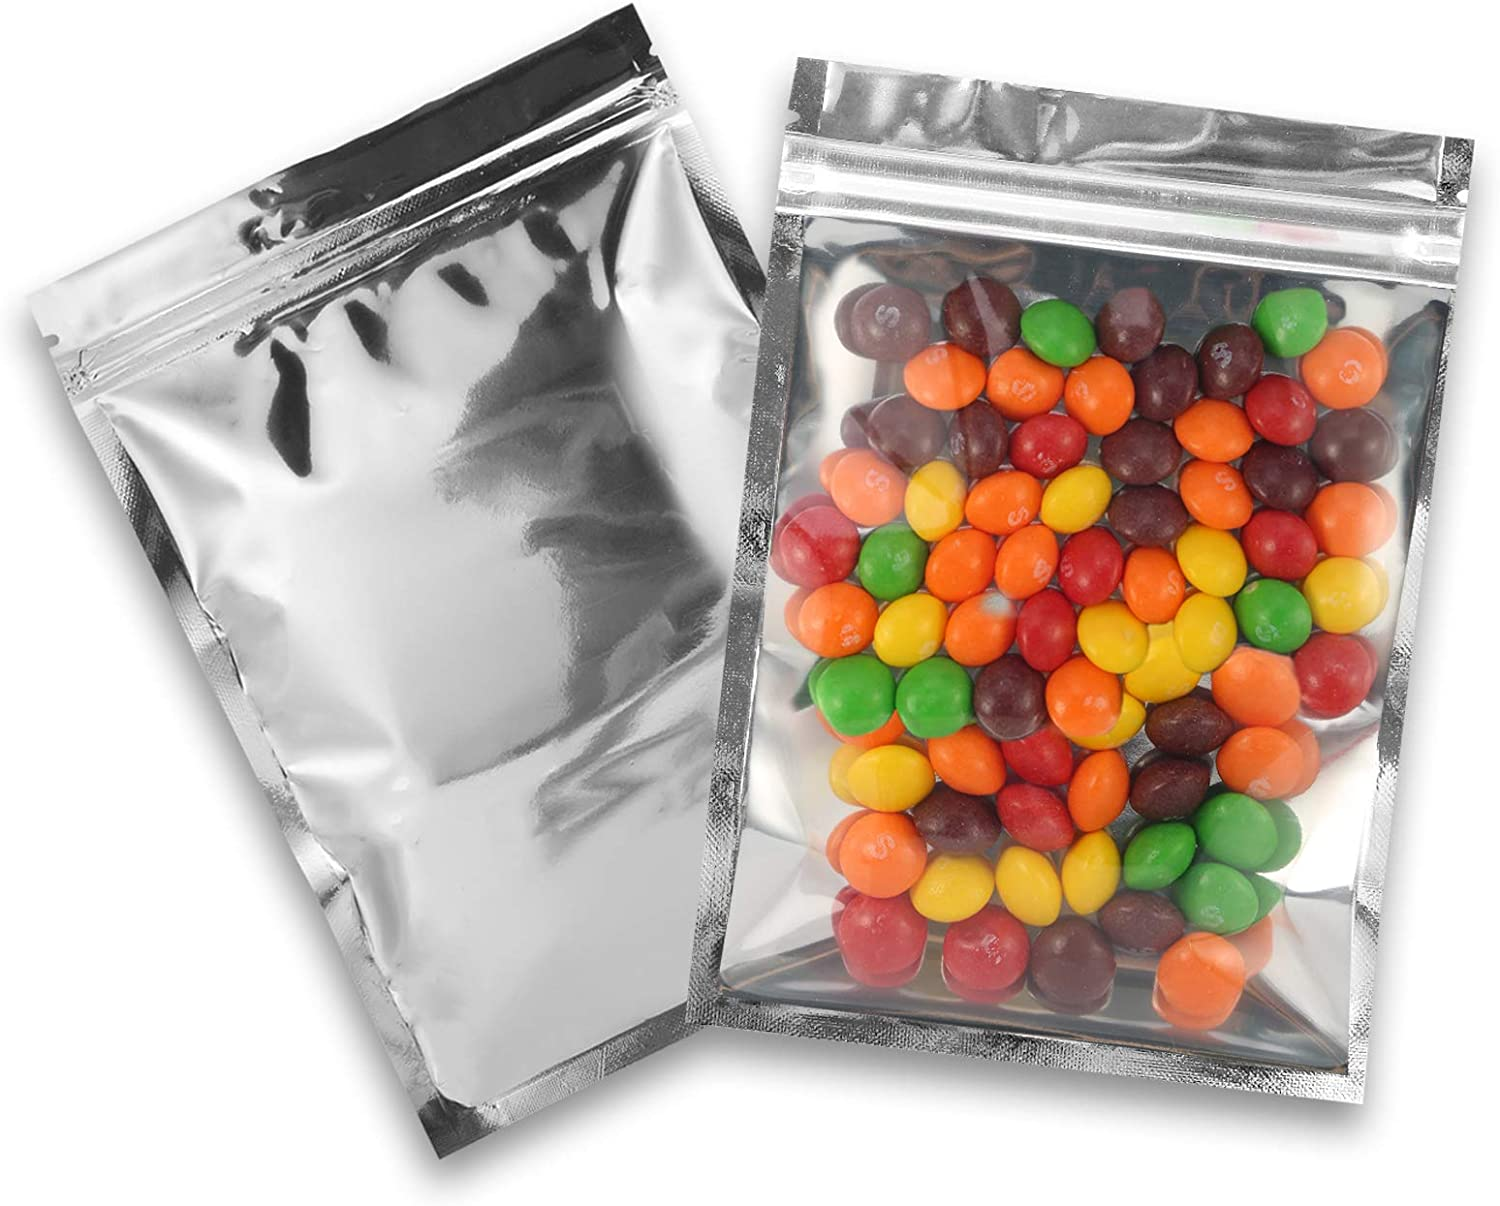 Resealable Mylar Bags | 100 Pcs 4 X 6 Inch | Smell Proof Ziplock Bag Heat Seal Cute Packaging Foil Food Bags Sealable Small Front Clear Plastic Silver for Storage Candy Beef Jerky Jewerly Product